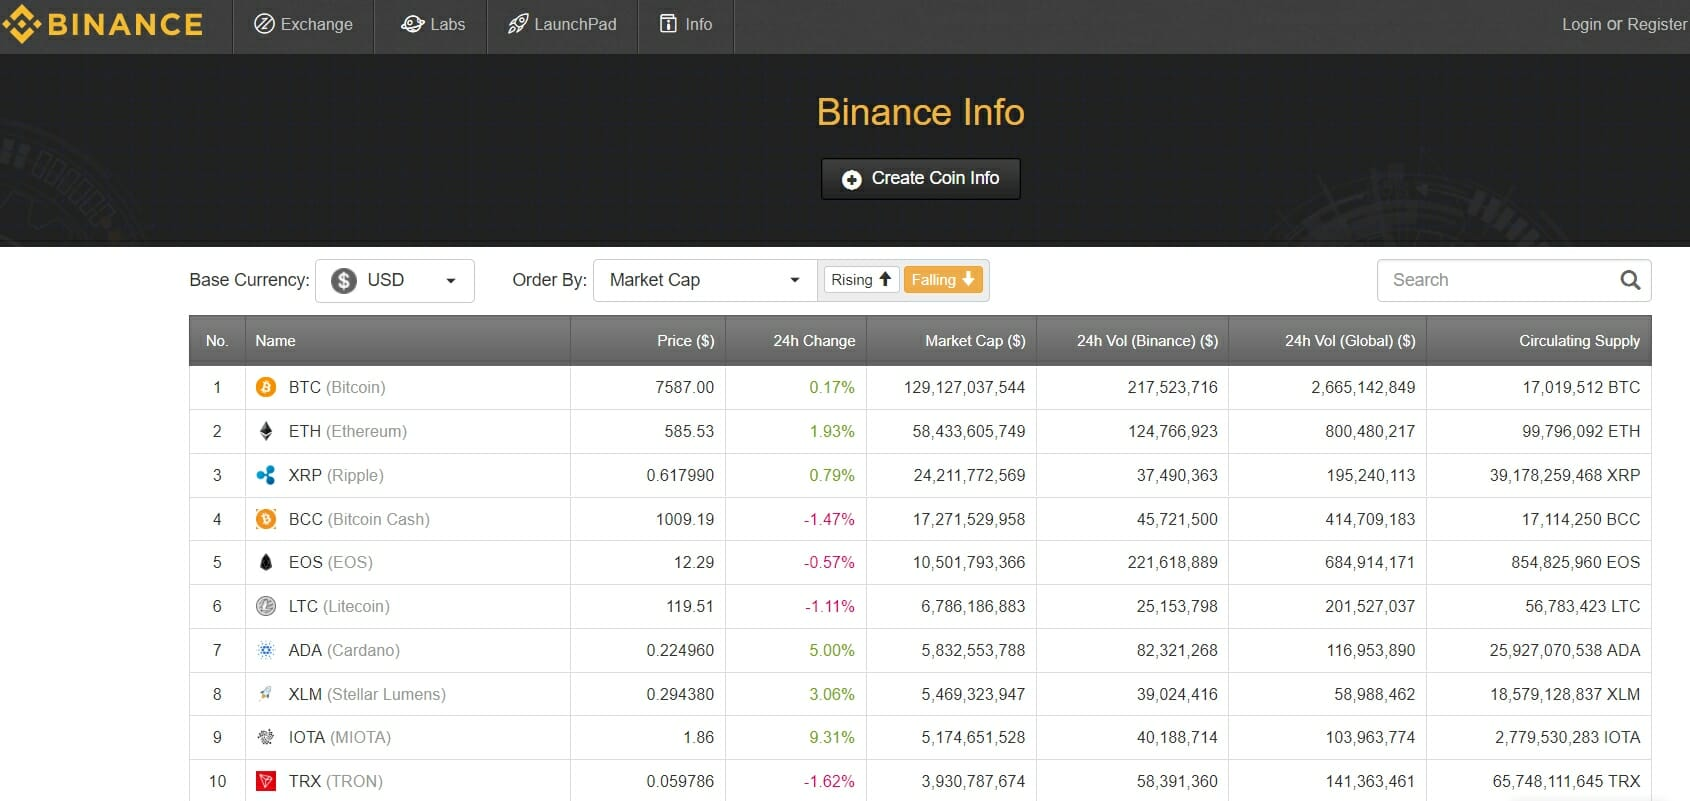 Binance exchange cryptocurrencies